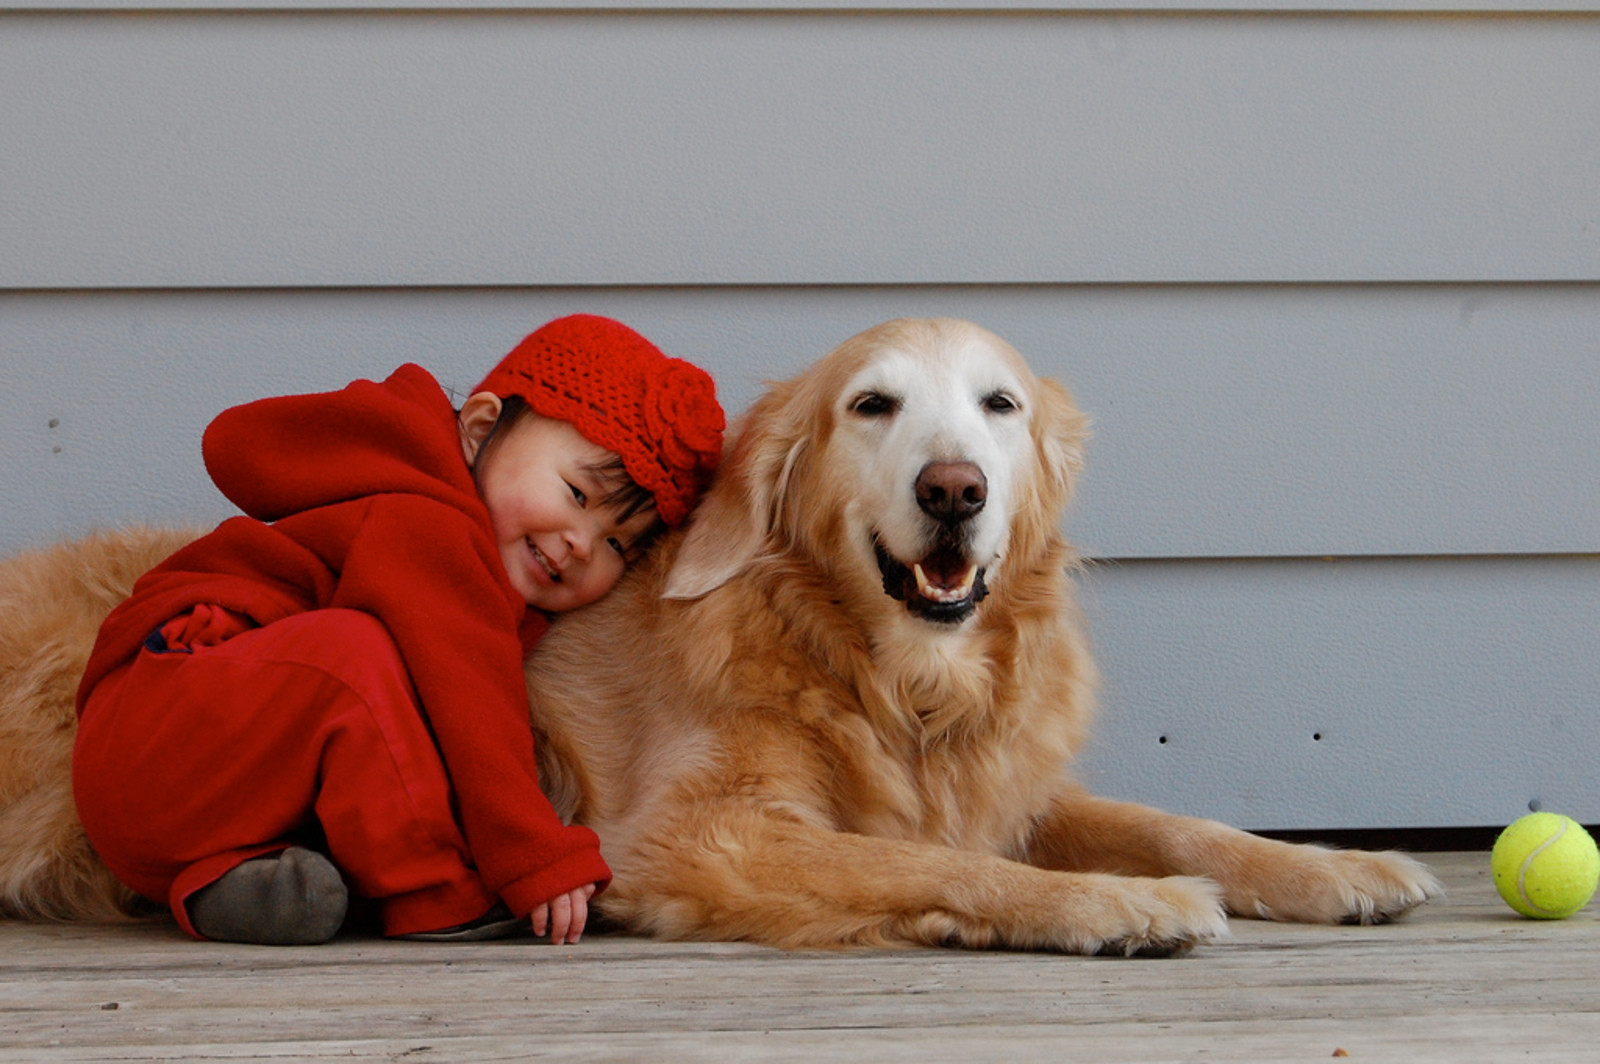 How to Keep Kids and Pets Safe Together